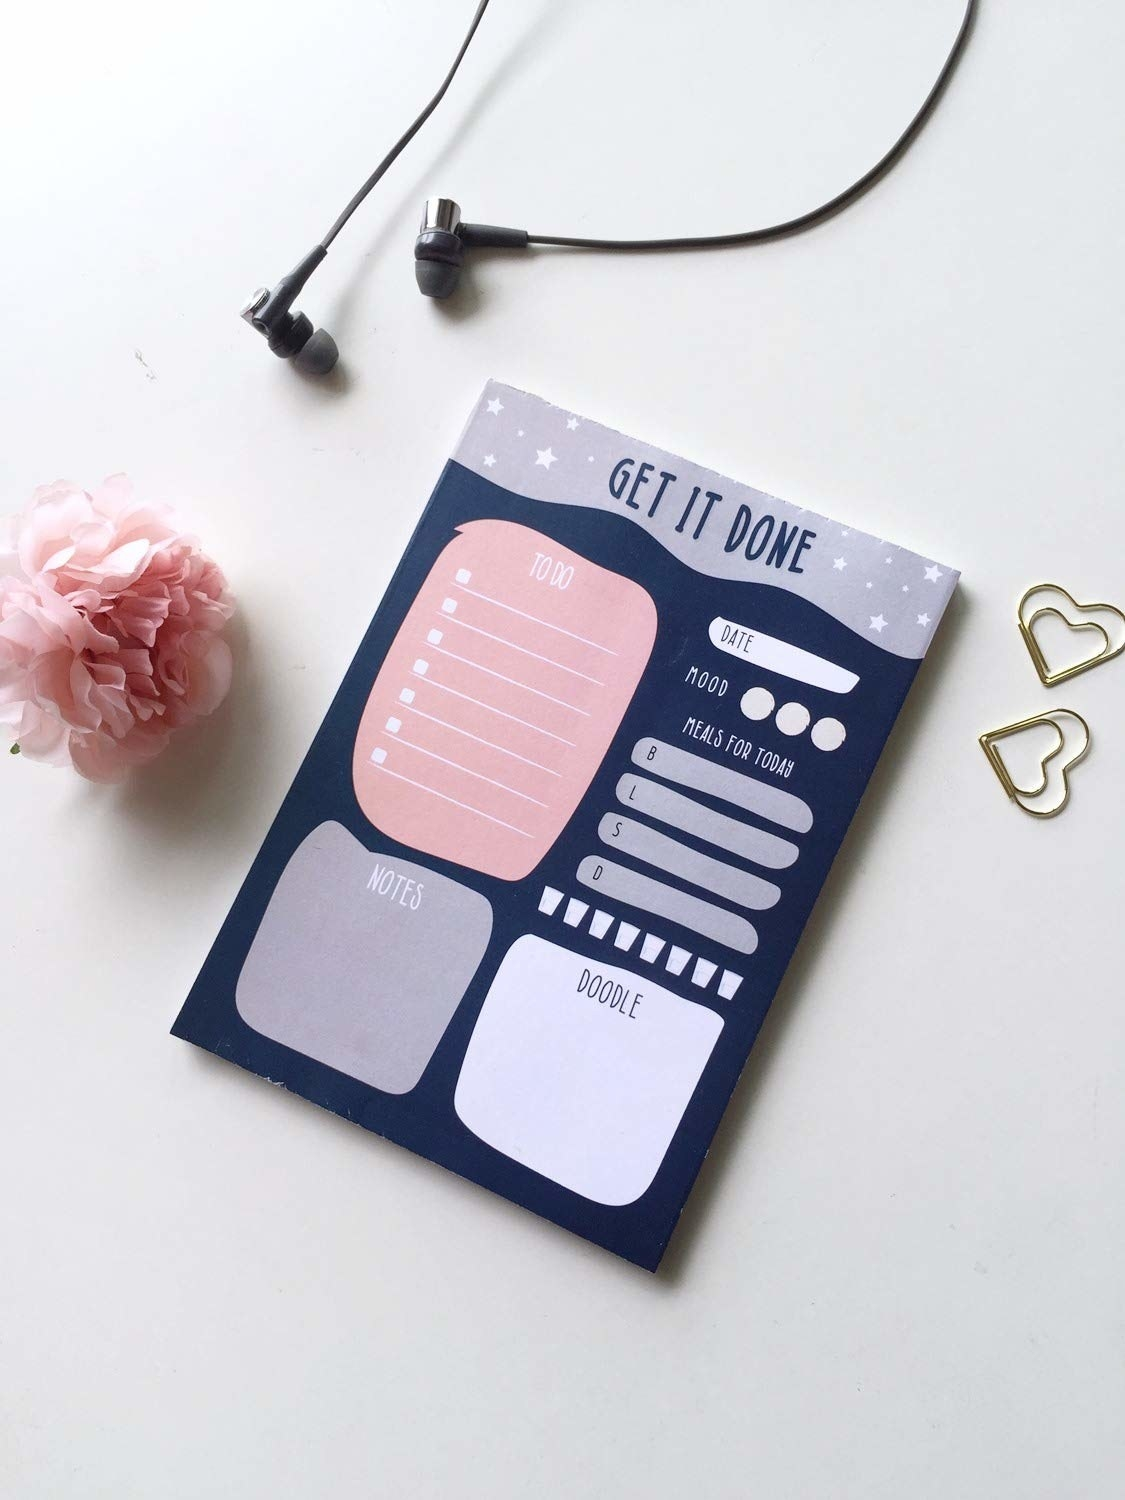 Sheets of the planner next to metal hearts and a rose